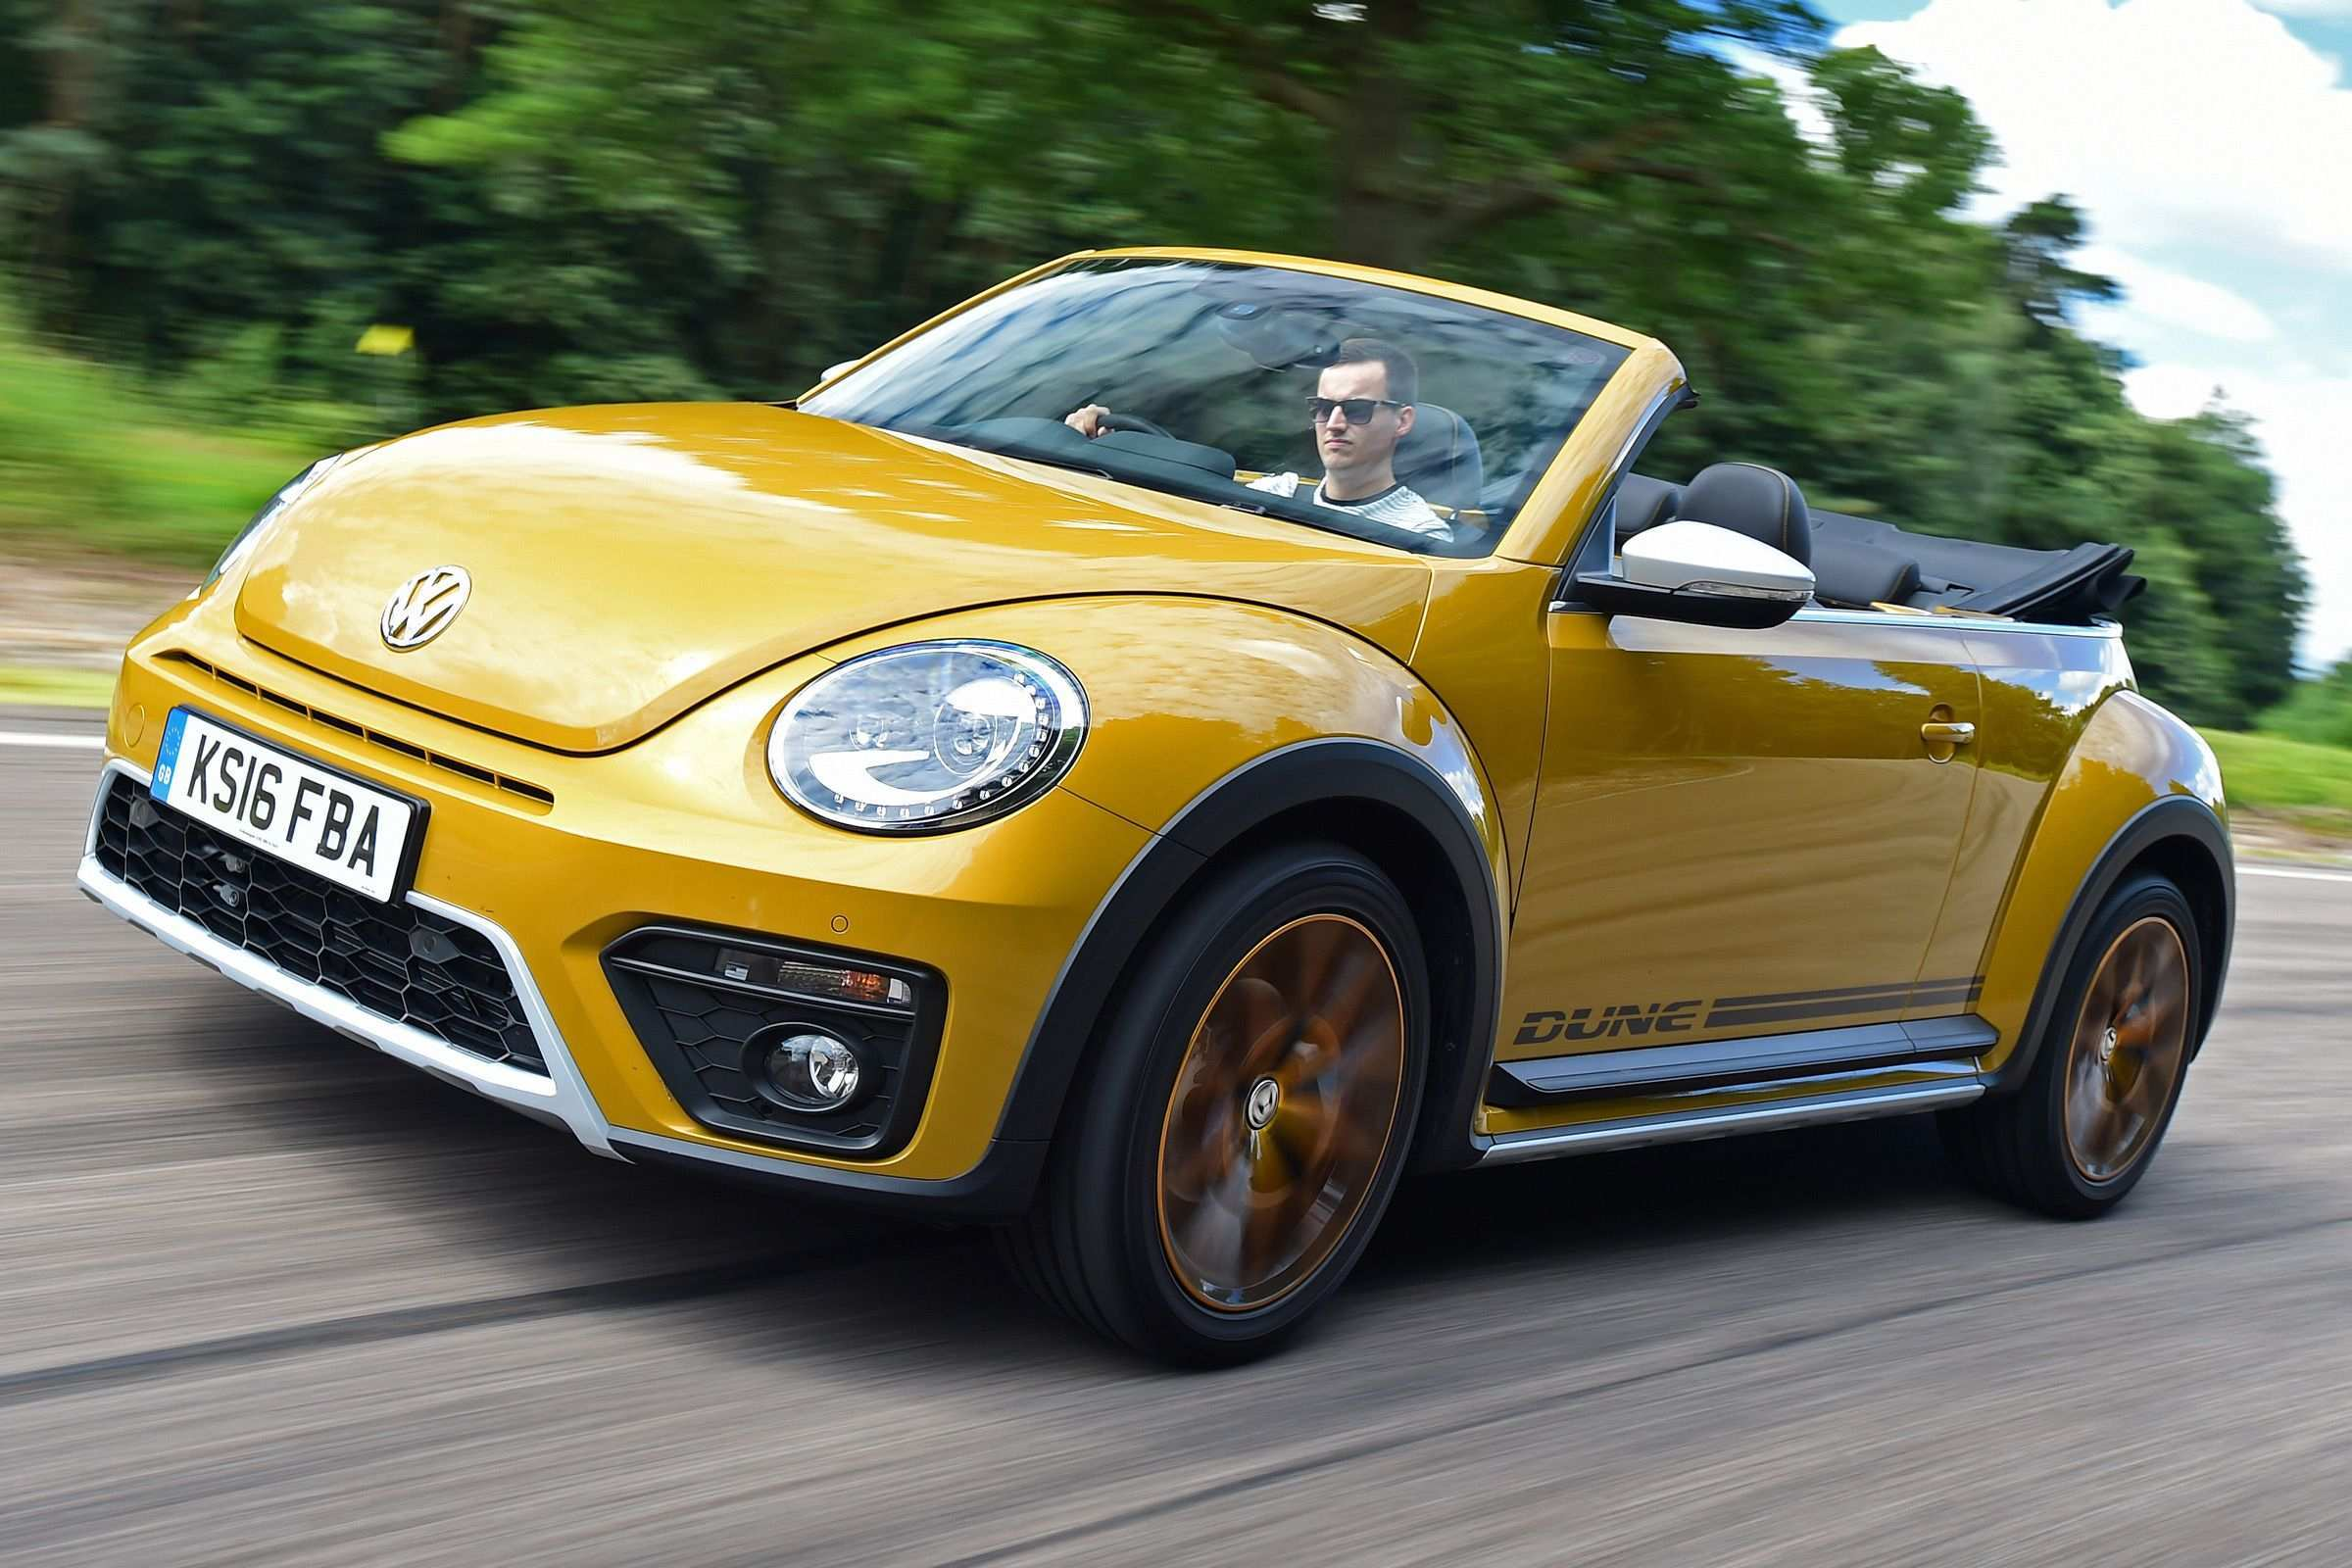 89 The Best 2020 Vw Beetle Dune Redesign And Concept